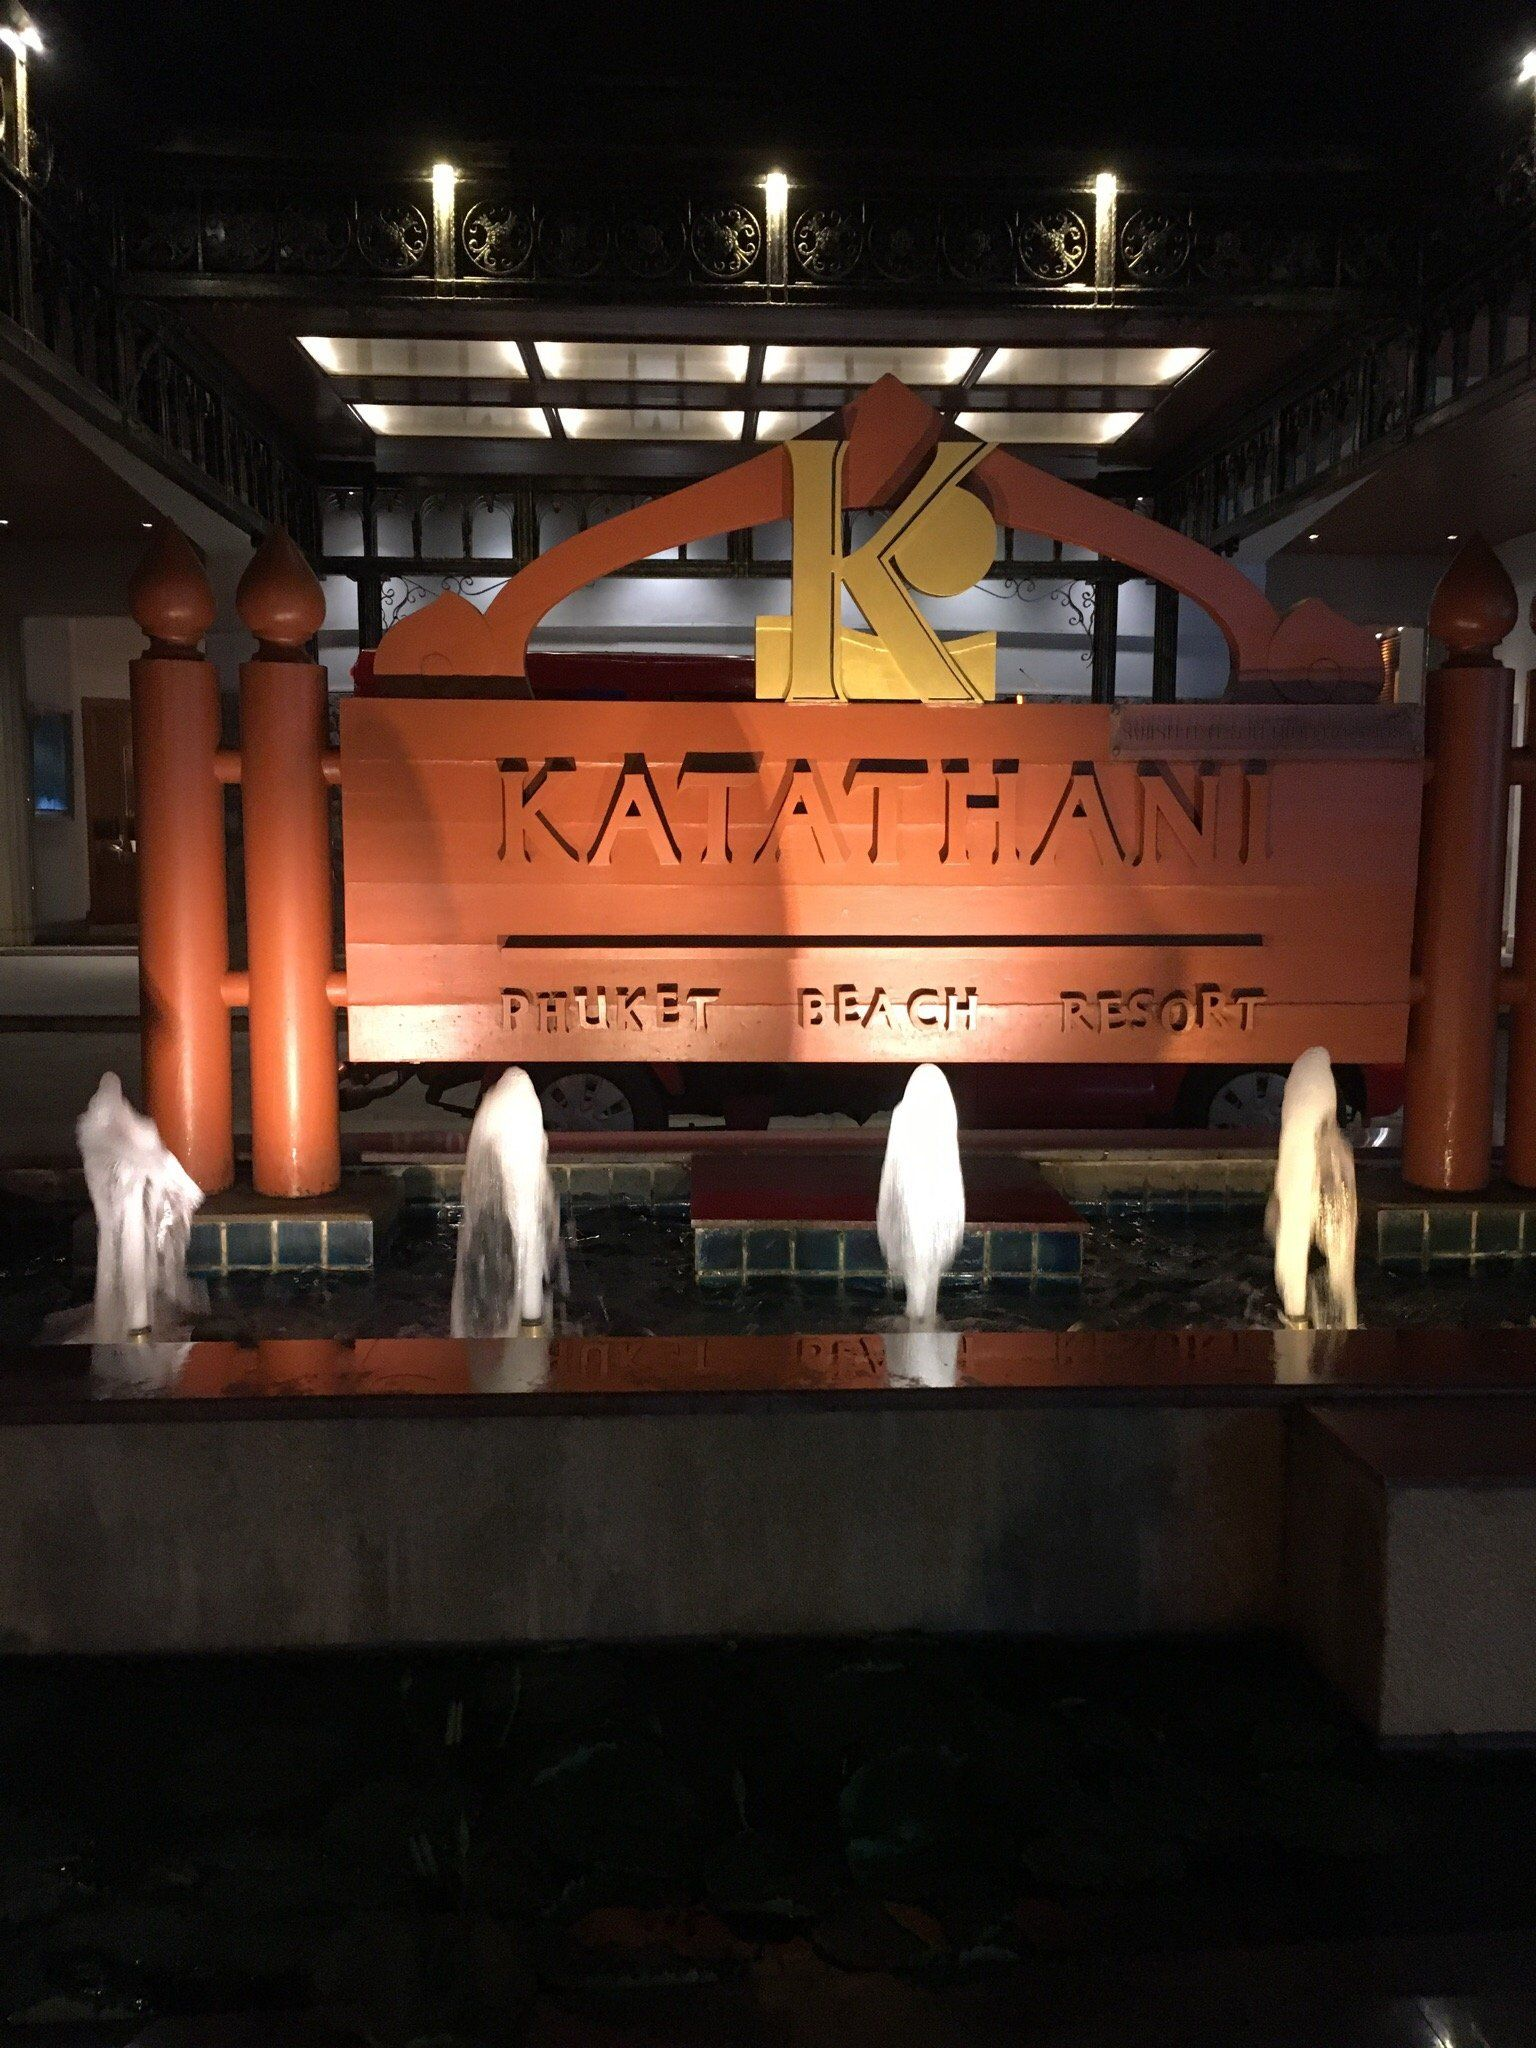 Katathani Phuket Beach Resort 331 215